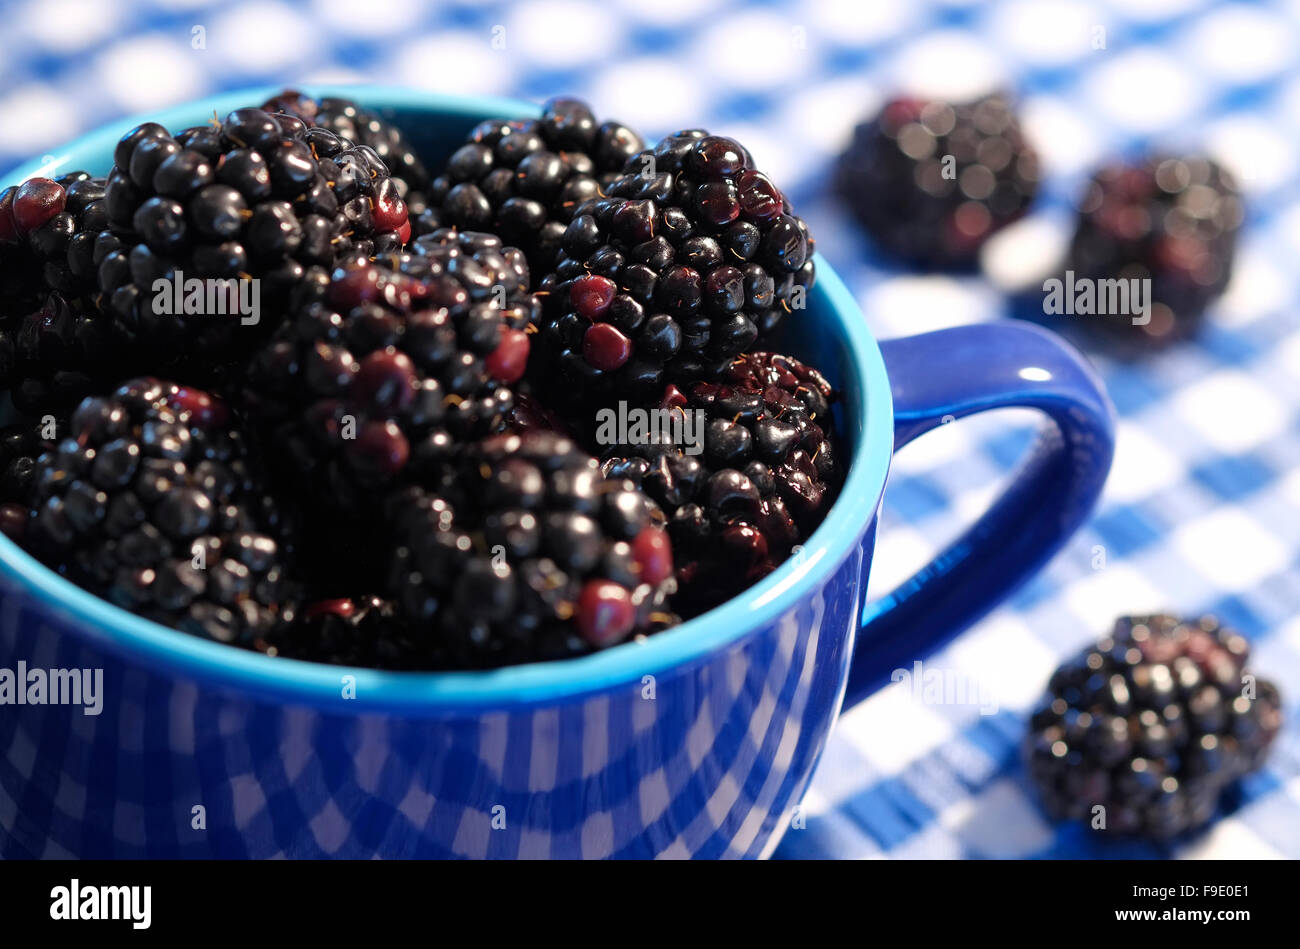 blackberries in blue cup on gingham table cloth - Stock Image